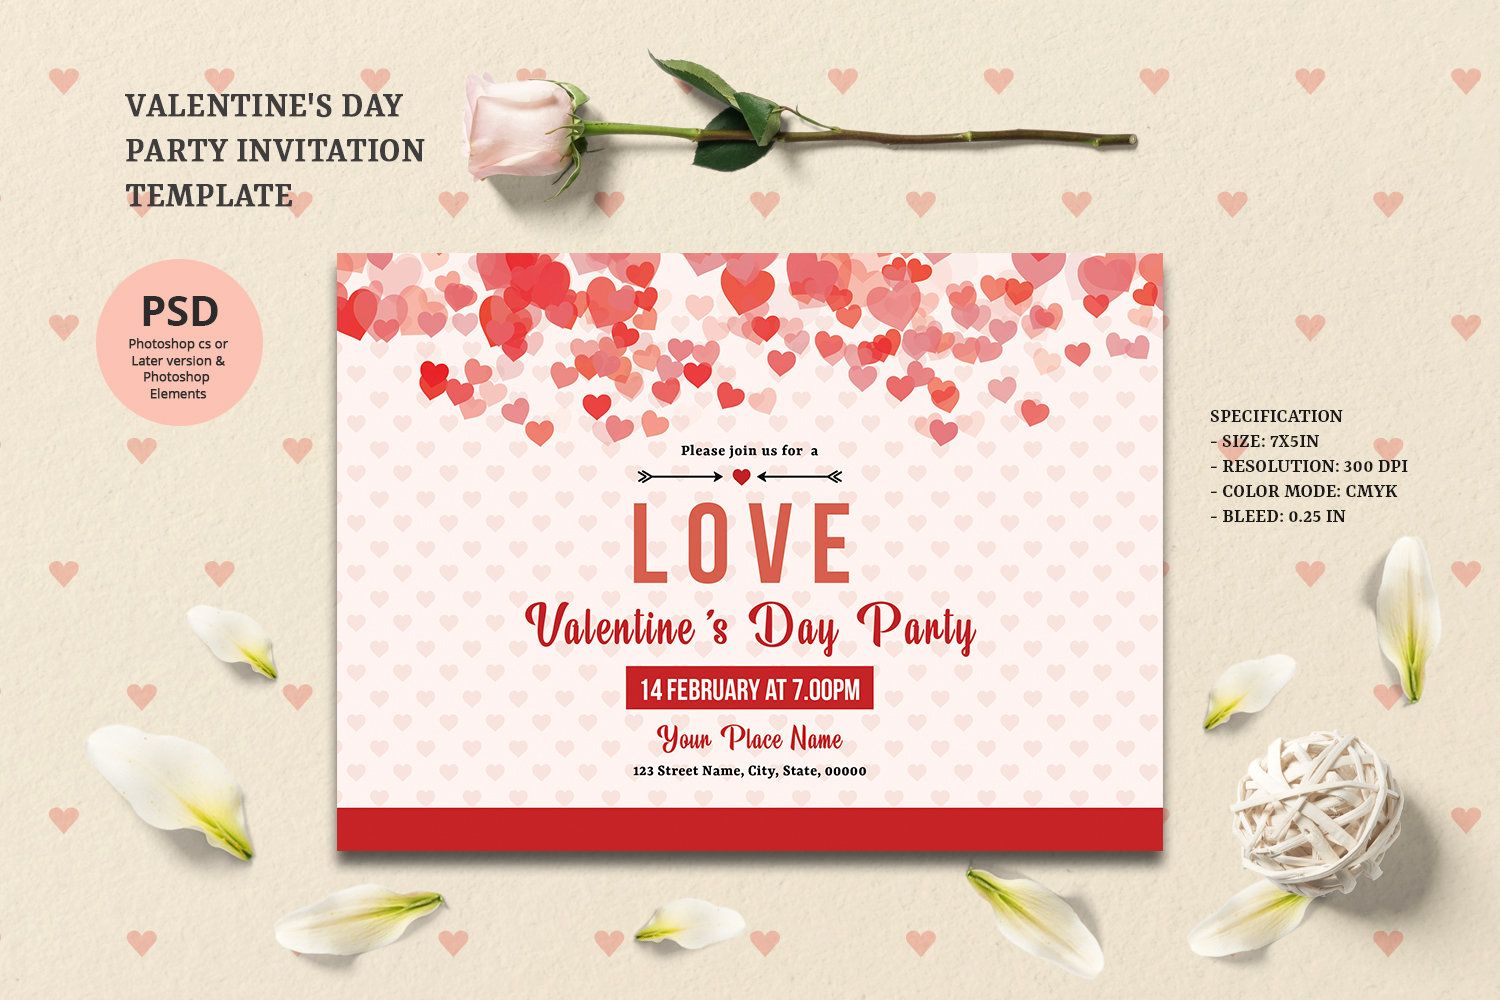 Valentines Day Party Invitation Template Valentine S Day Party Flyer Ms Word Photo Valentine Party Invitations Valentines Day Party Party Invite Template